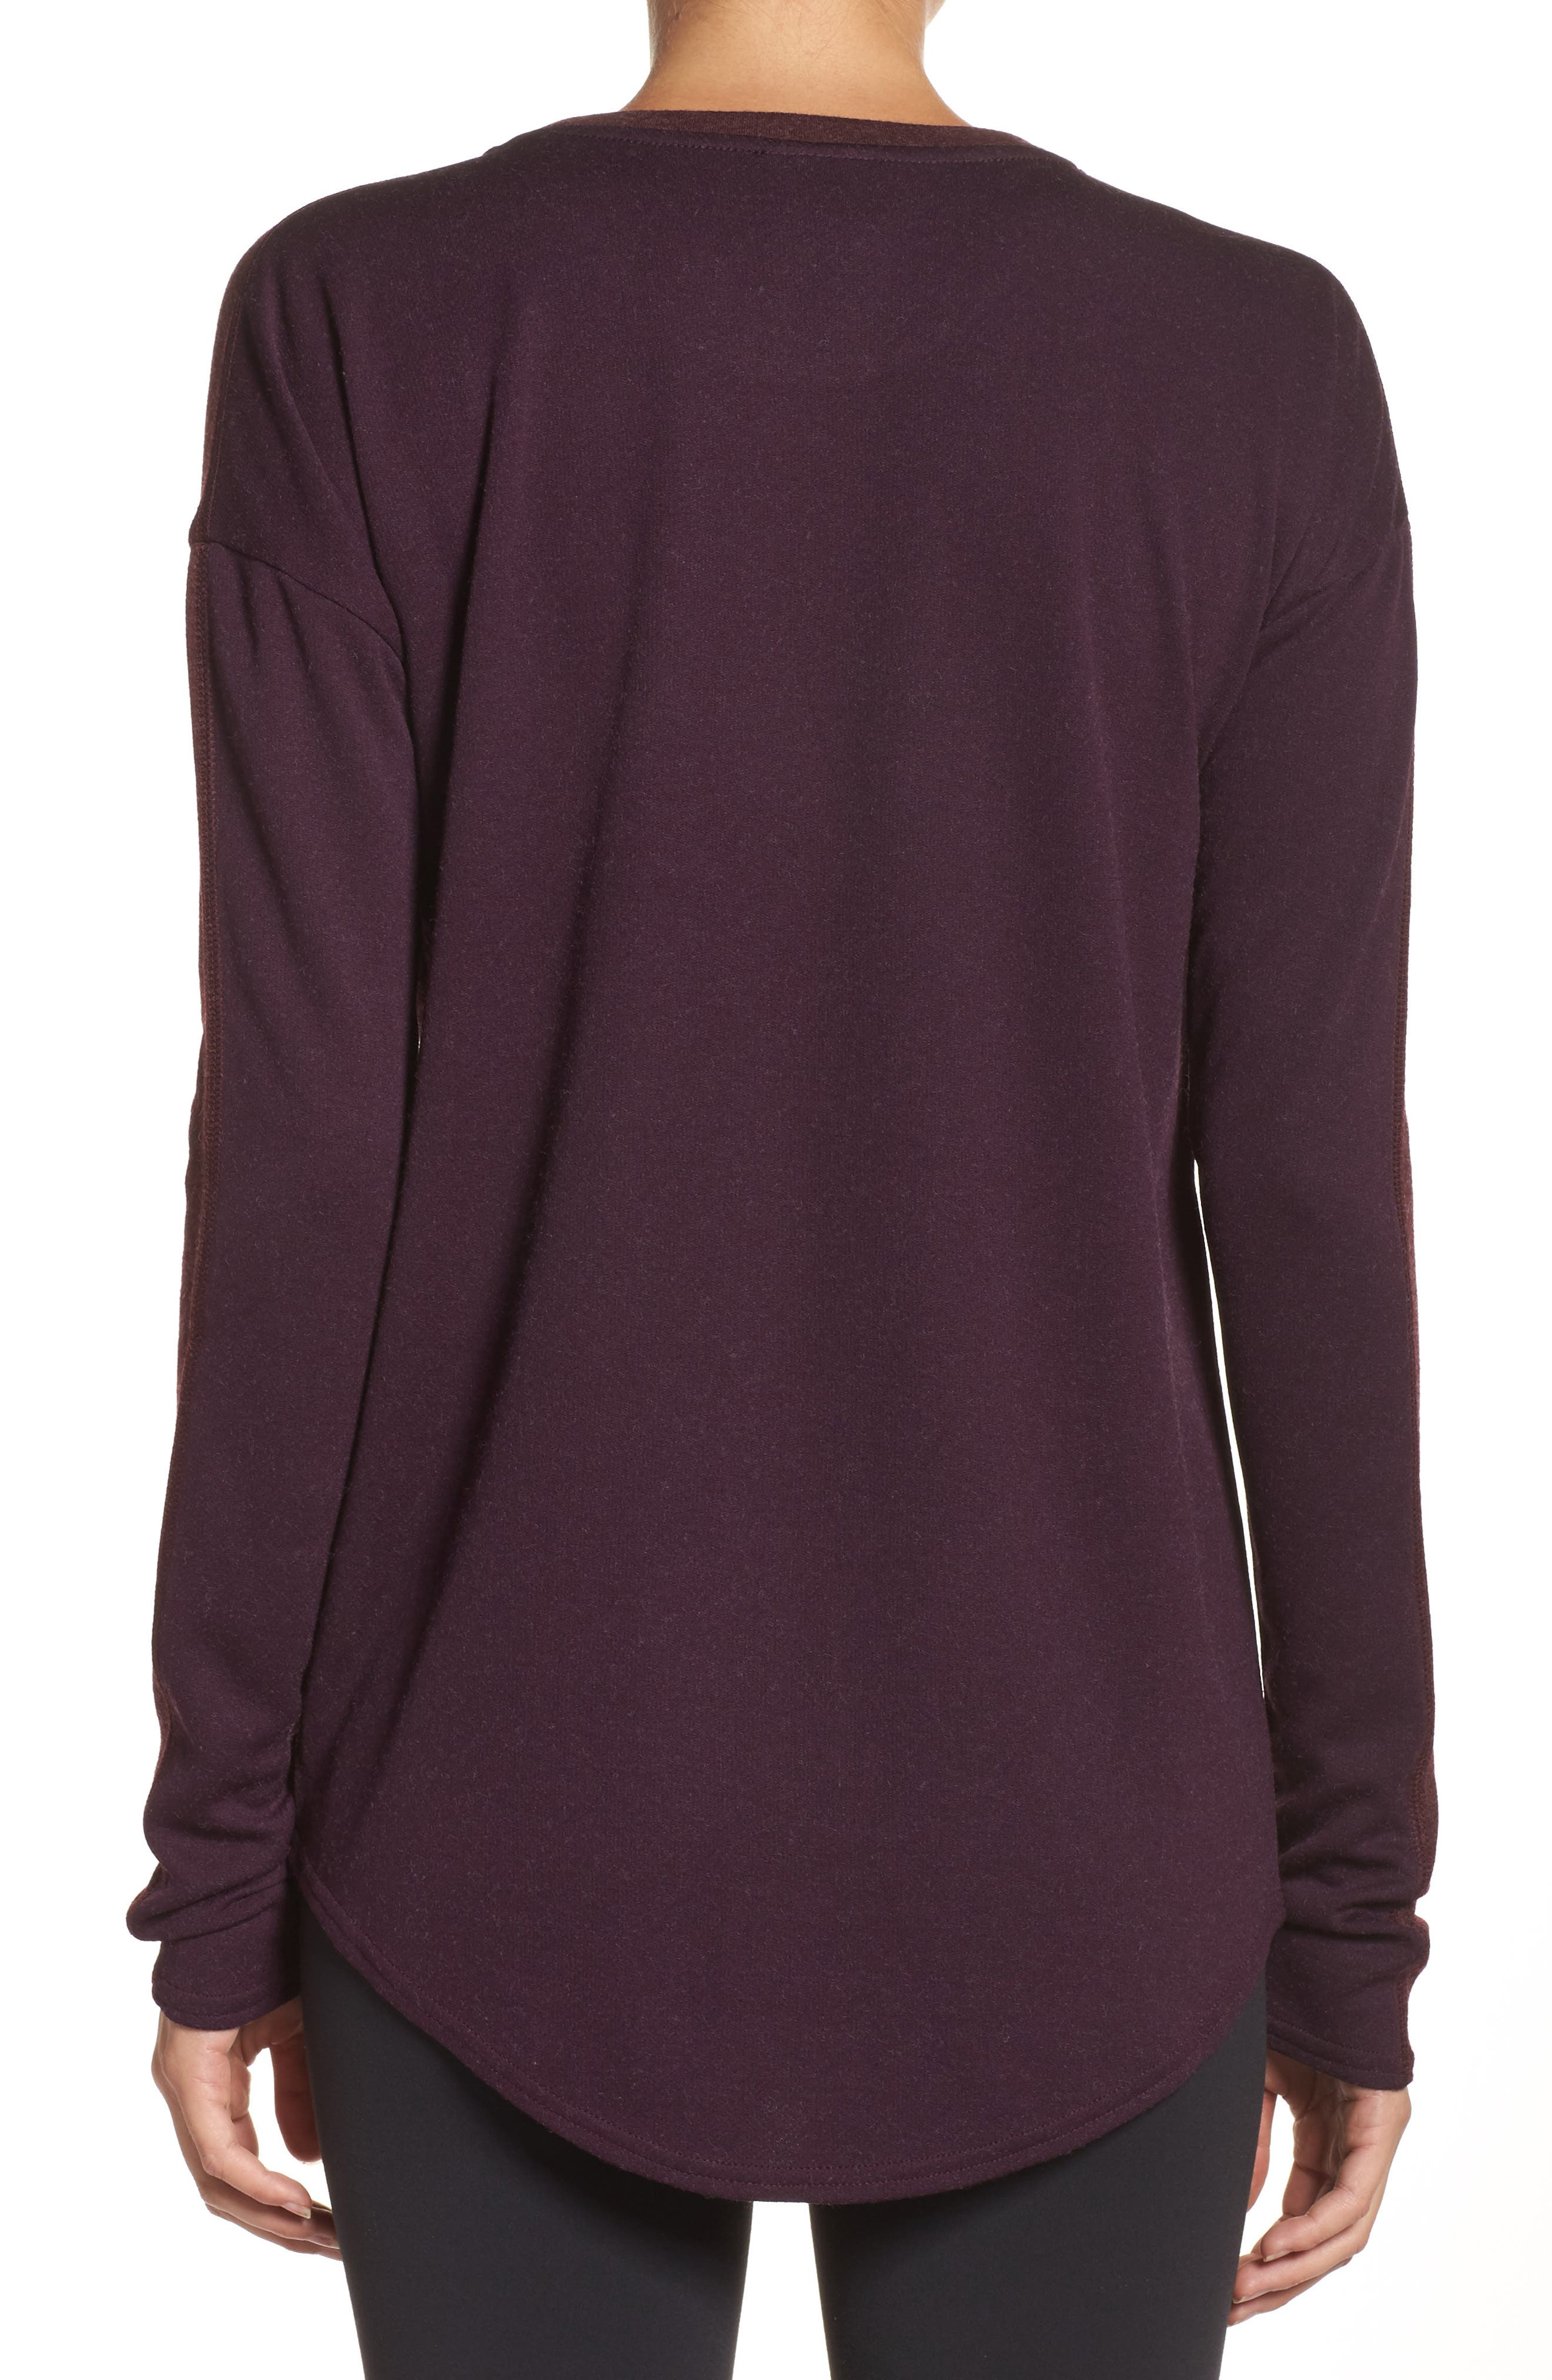 247 Luxe Long Sleeve Tee,                             Alternate thumbnail 2, color,                             930